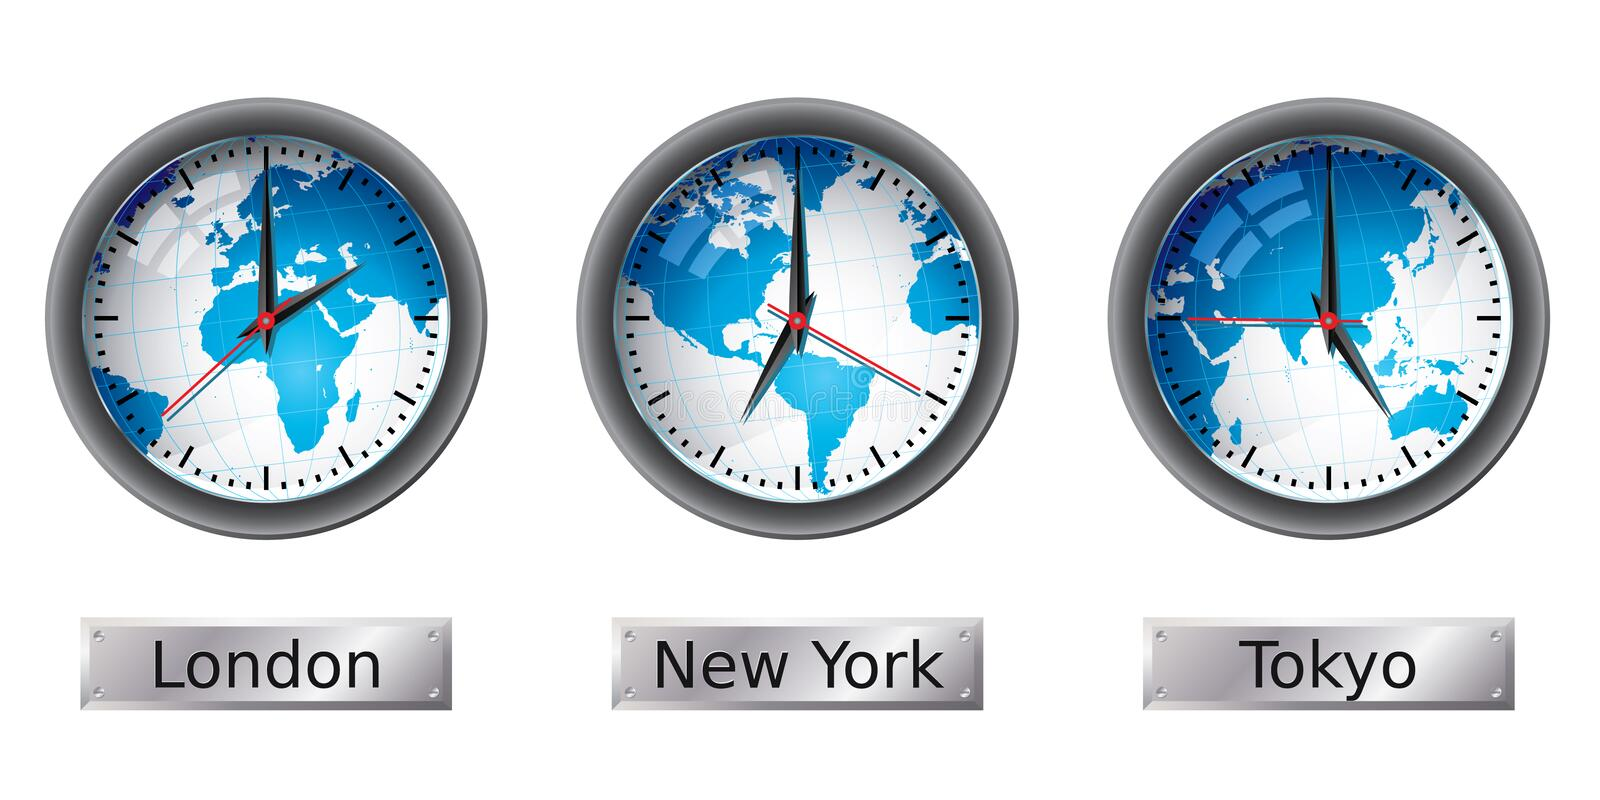 World map time zone clocks stock vector illustration of stock download world map time zone clocks stock vector illustration of stock 13096583 gumiabroncs Gallery